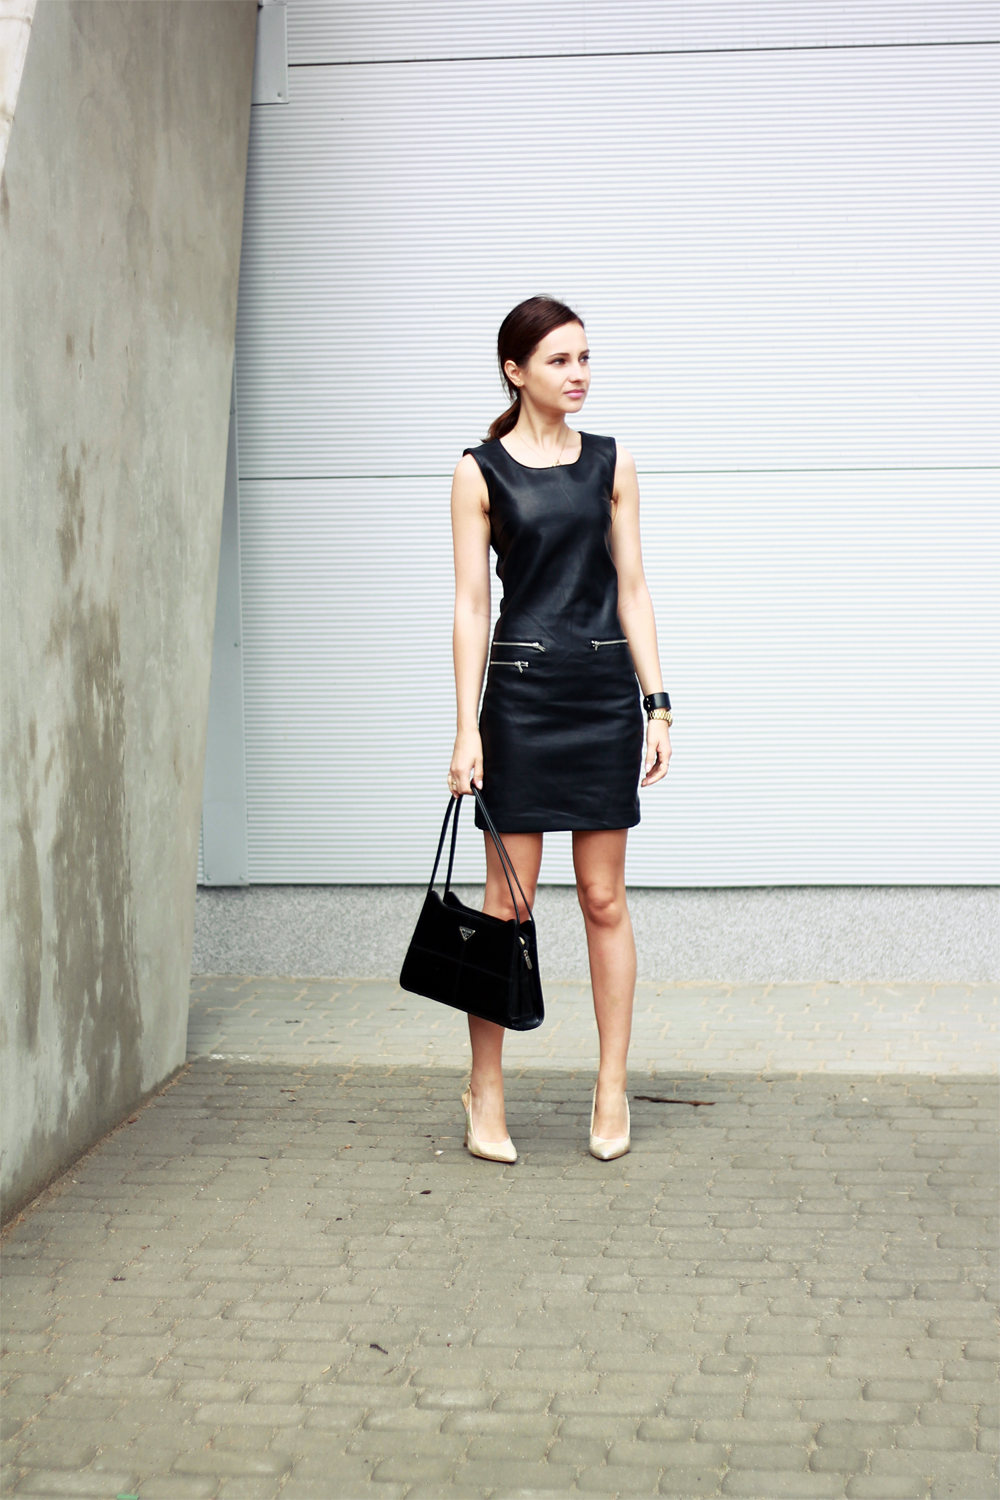 fashion blog street style chic vogue tumblr girl black dress lilicons 5